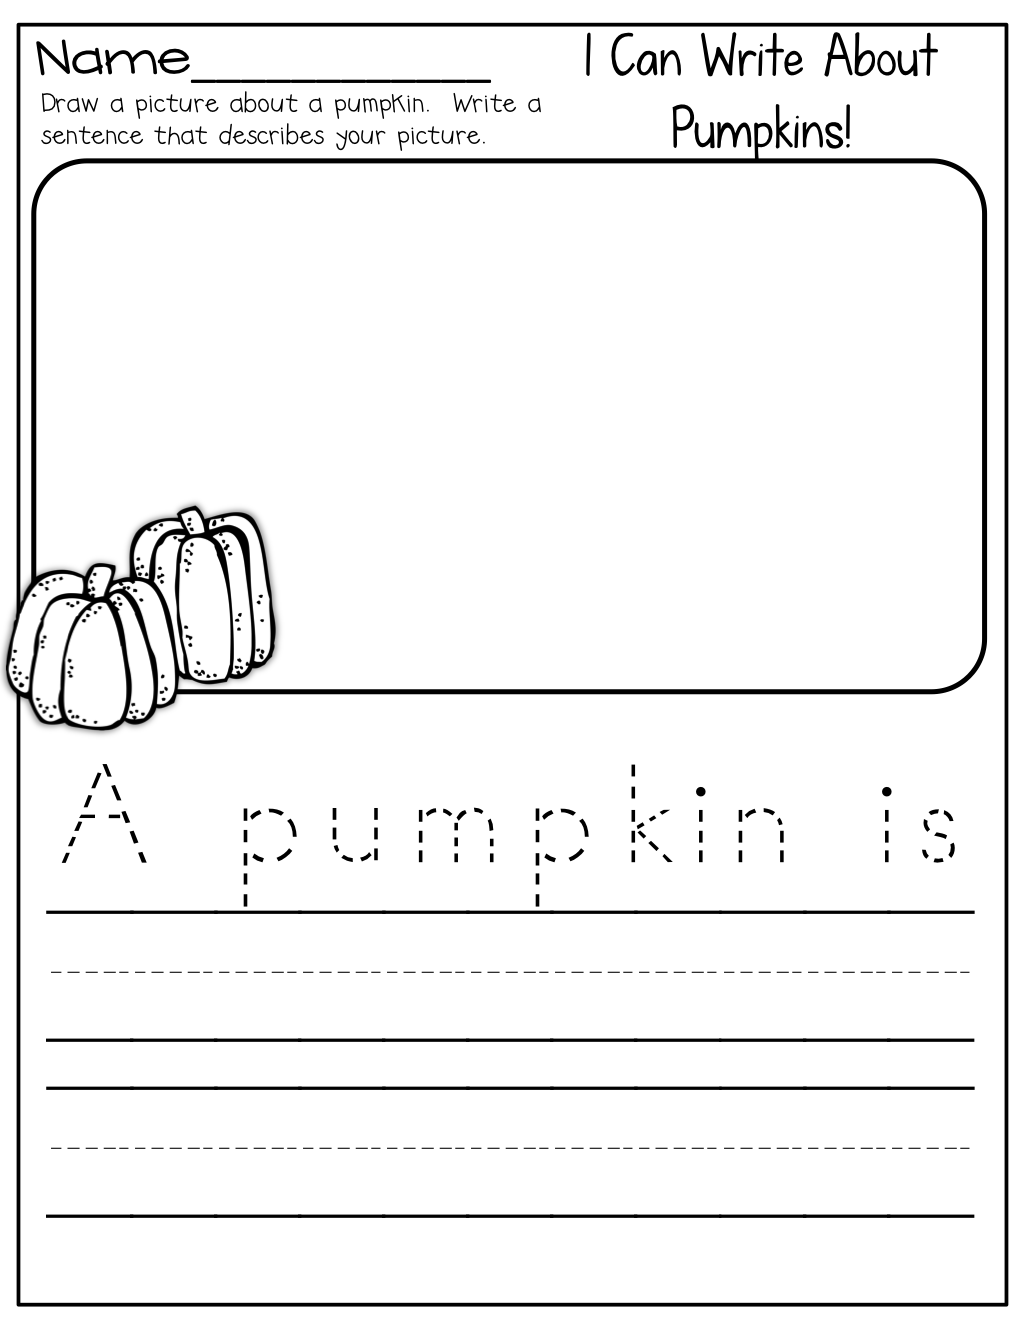 I Can Write About Pumpkins